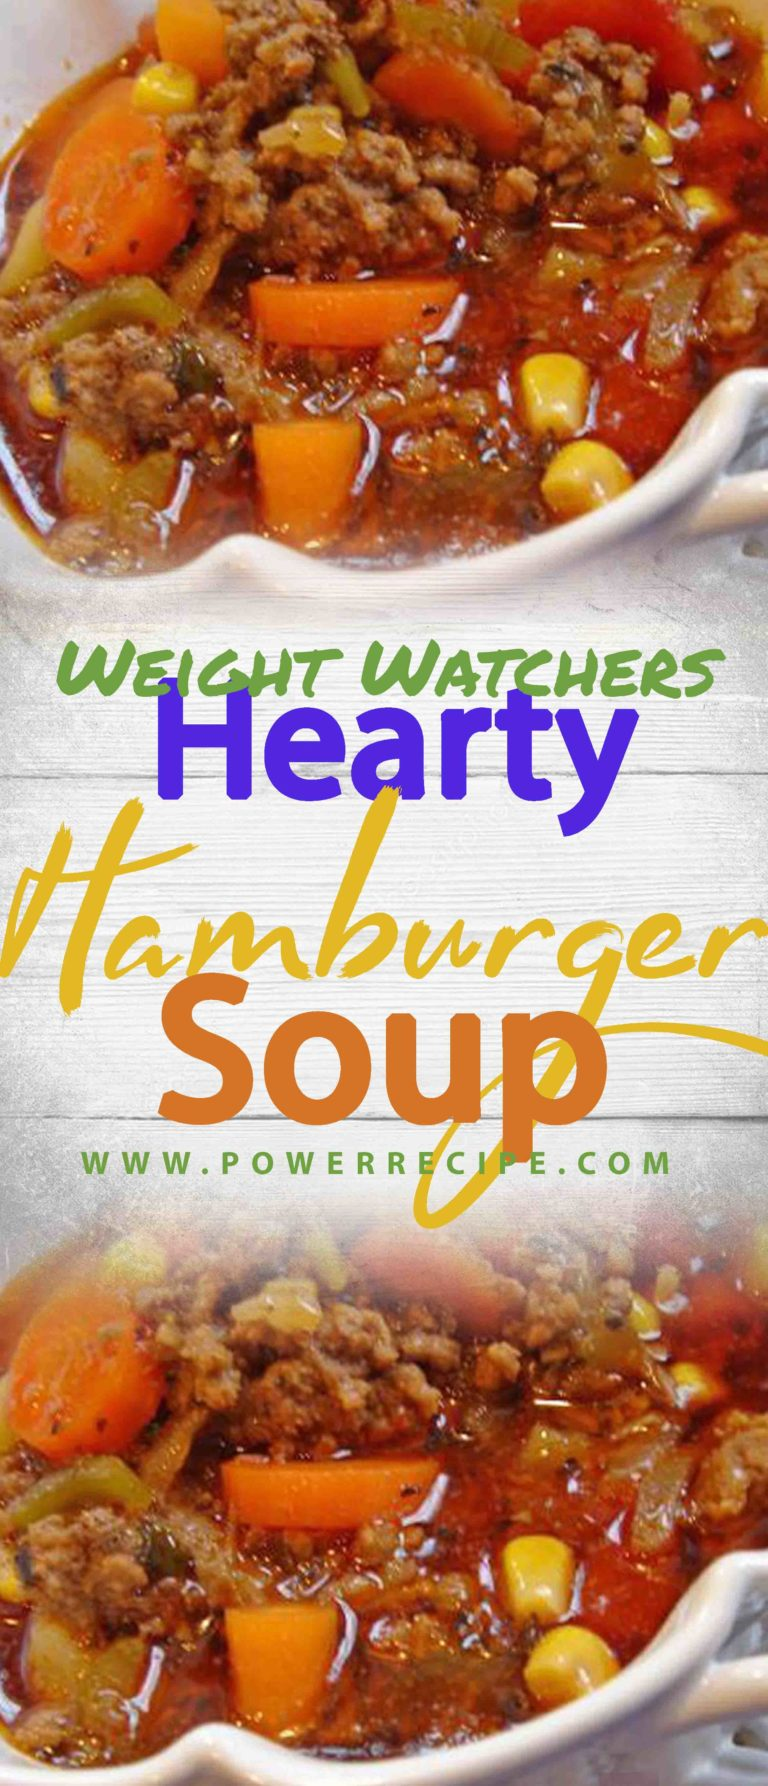 Ingredients 2 Lbs Lean Ground Beef1 White Onion Peeled And Diced1 4 Teaspoon Ground Black Pepper More To Tast1 2 Teaspoon Dry Hamburger Soup Ground Beef Soup